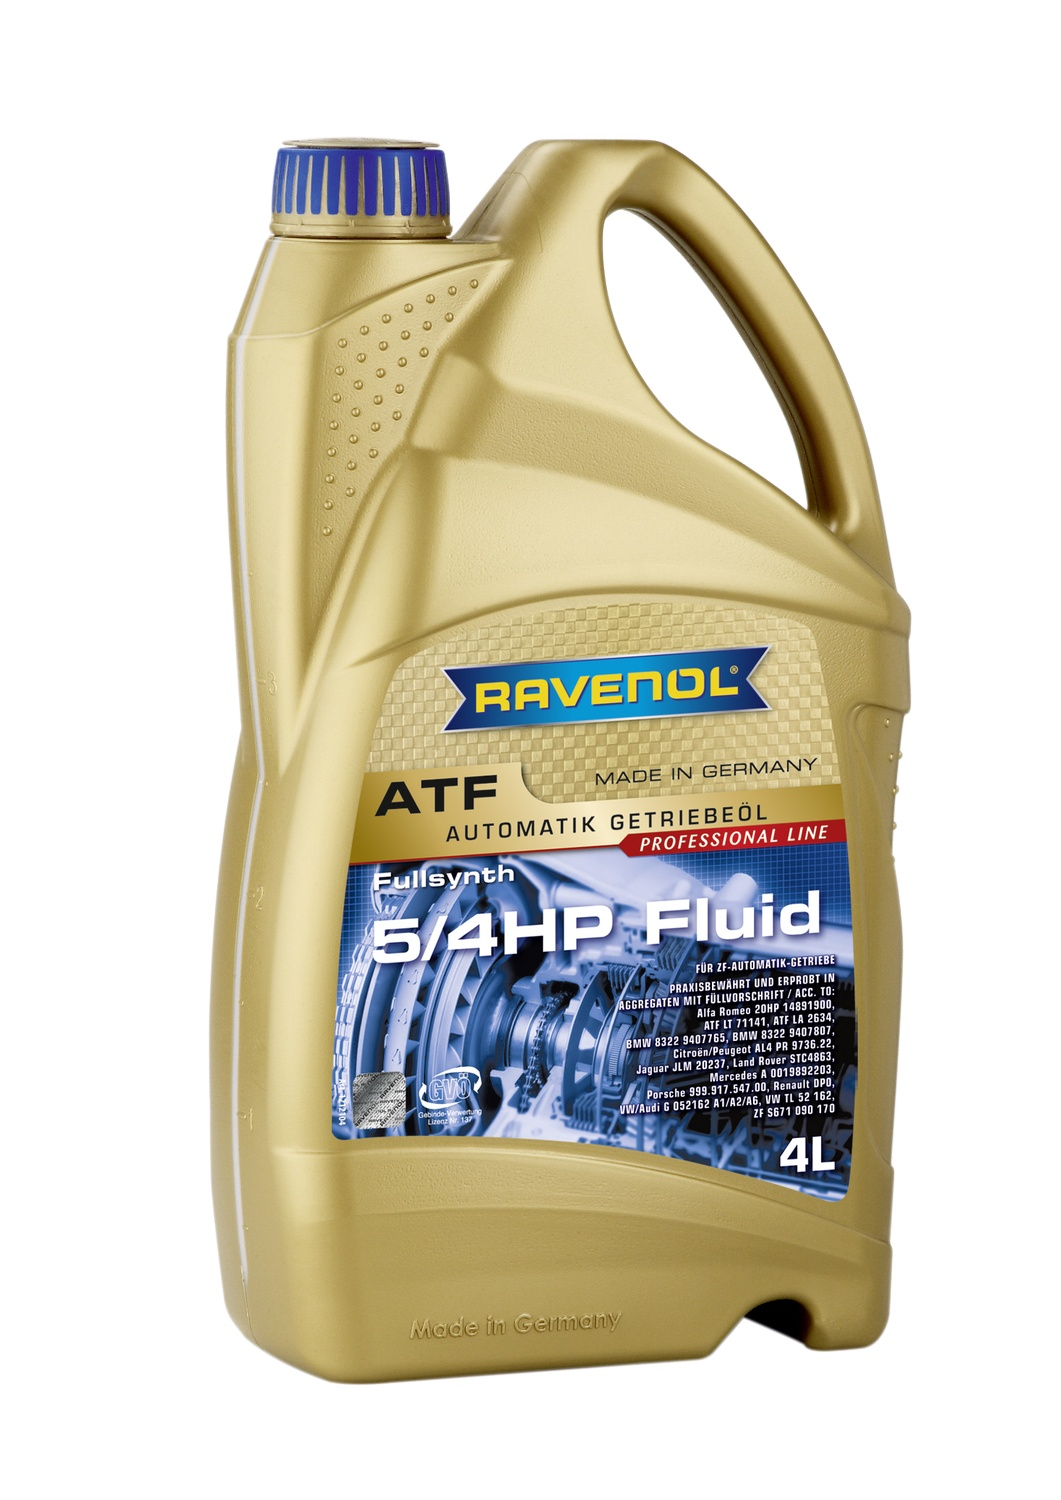 ATF 5/4 HP Fluid